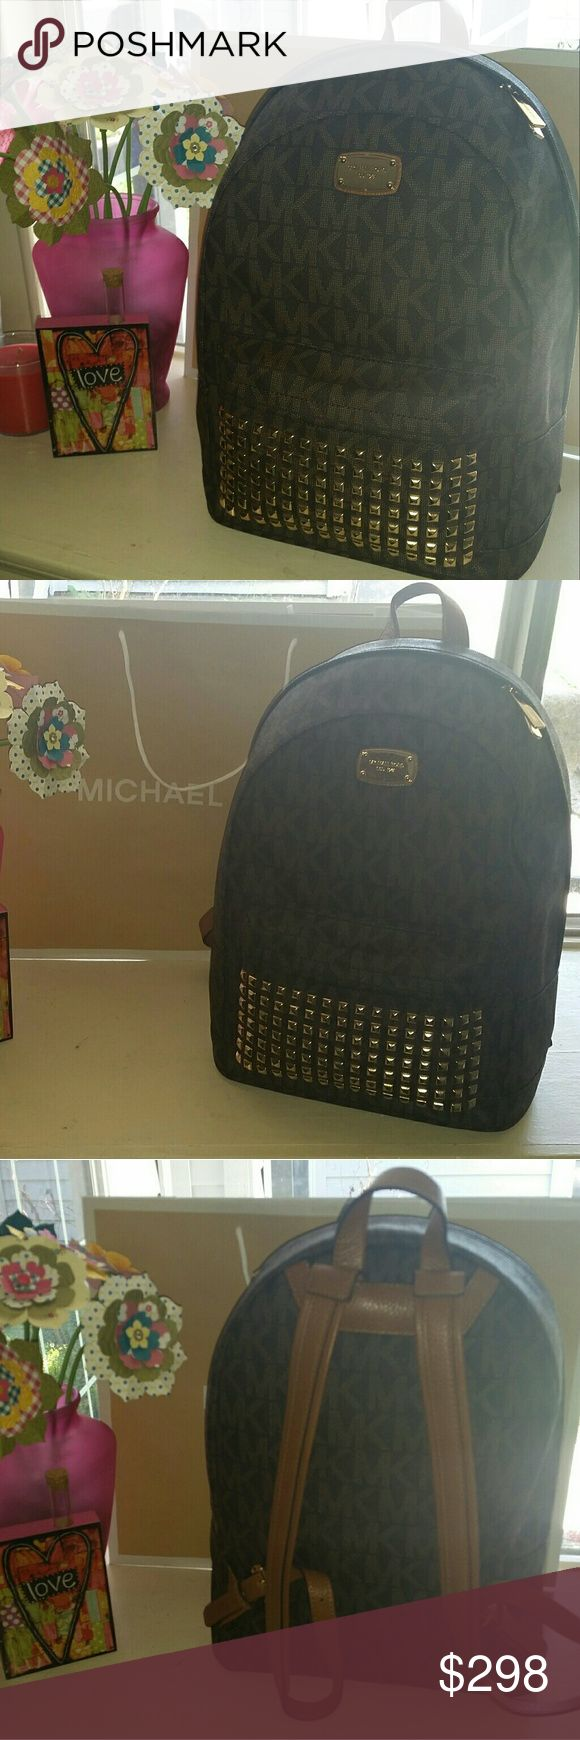 Authentic Michael Kors LG studded backpack Large studded backpack  Brown One outside zipper compartment Five compartments plus one zipper pocket Great for travel Michael Kors Bags Backpacks